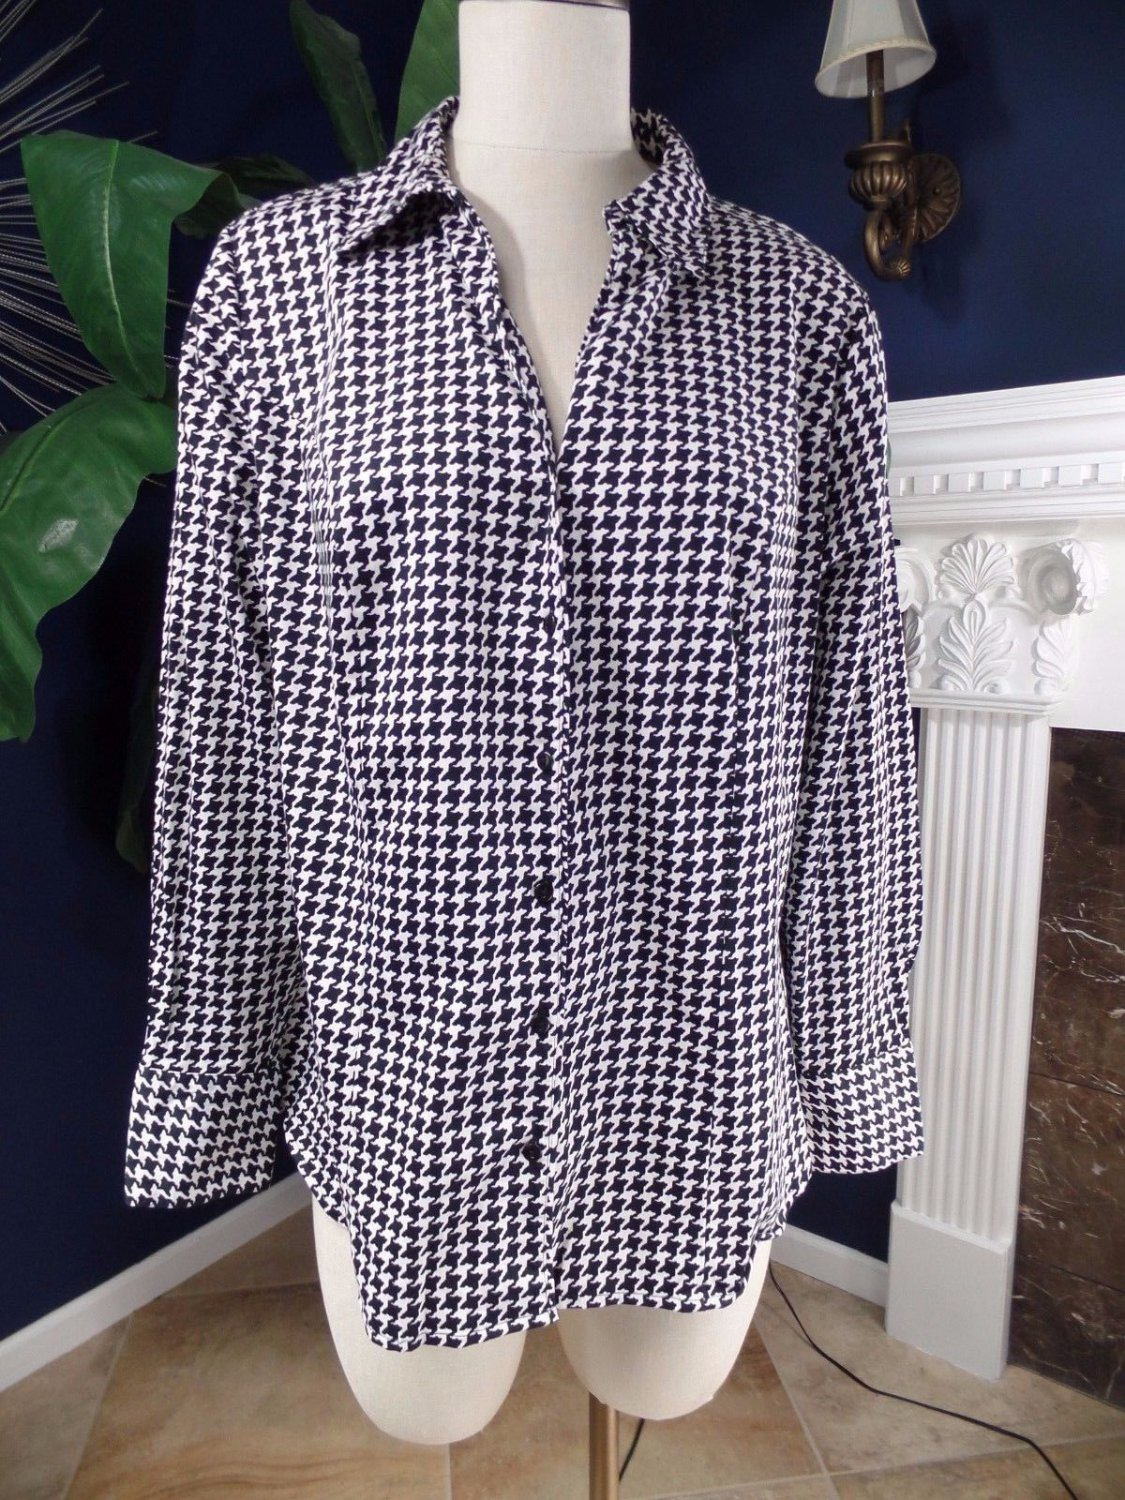 Lane Bryant Black/White Houndstooth Button Front Long Sleeve Blouse Shirt Top 18